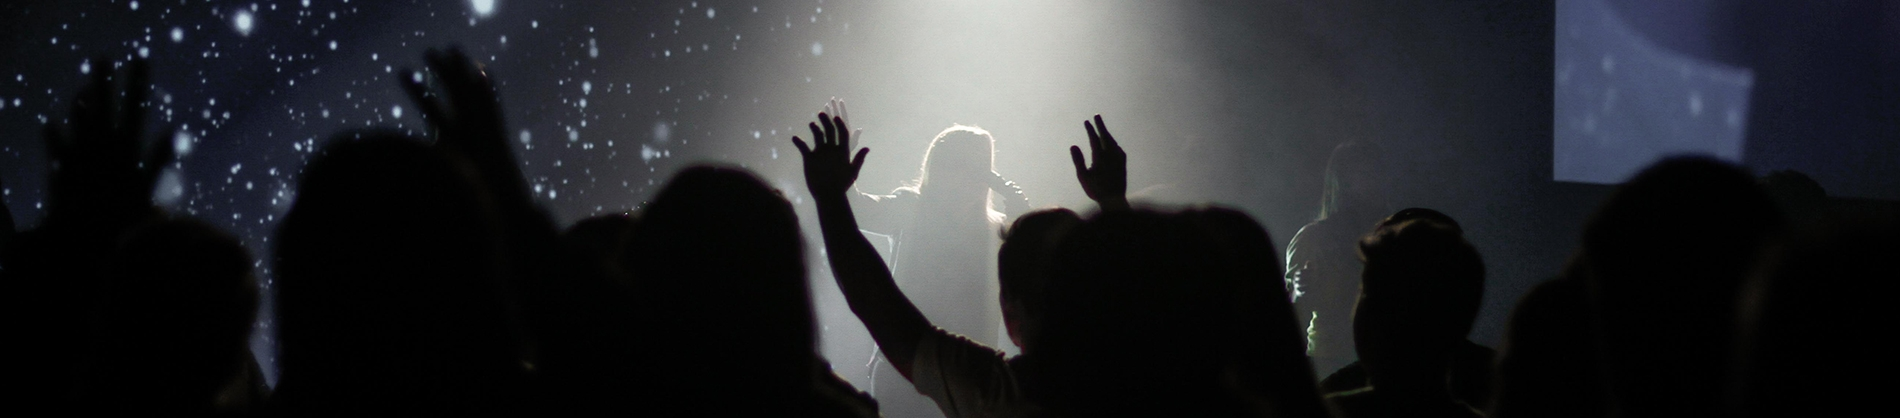 A women leading worship, congregation with their hands in the air